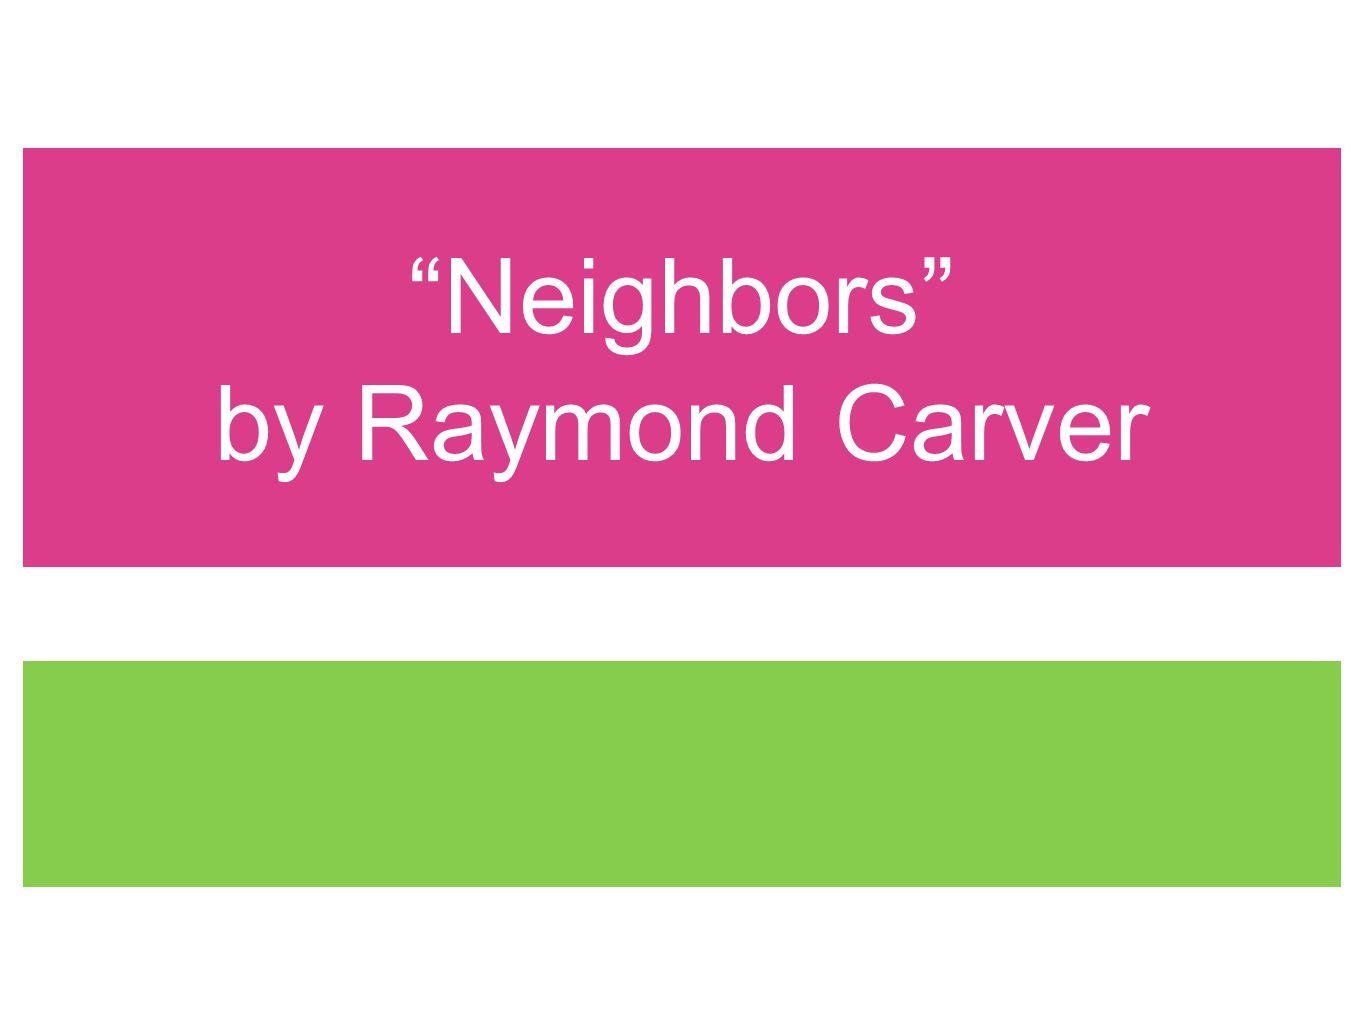 Neighbors by Raymond Carver